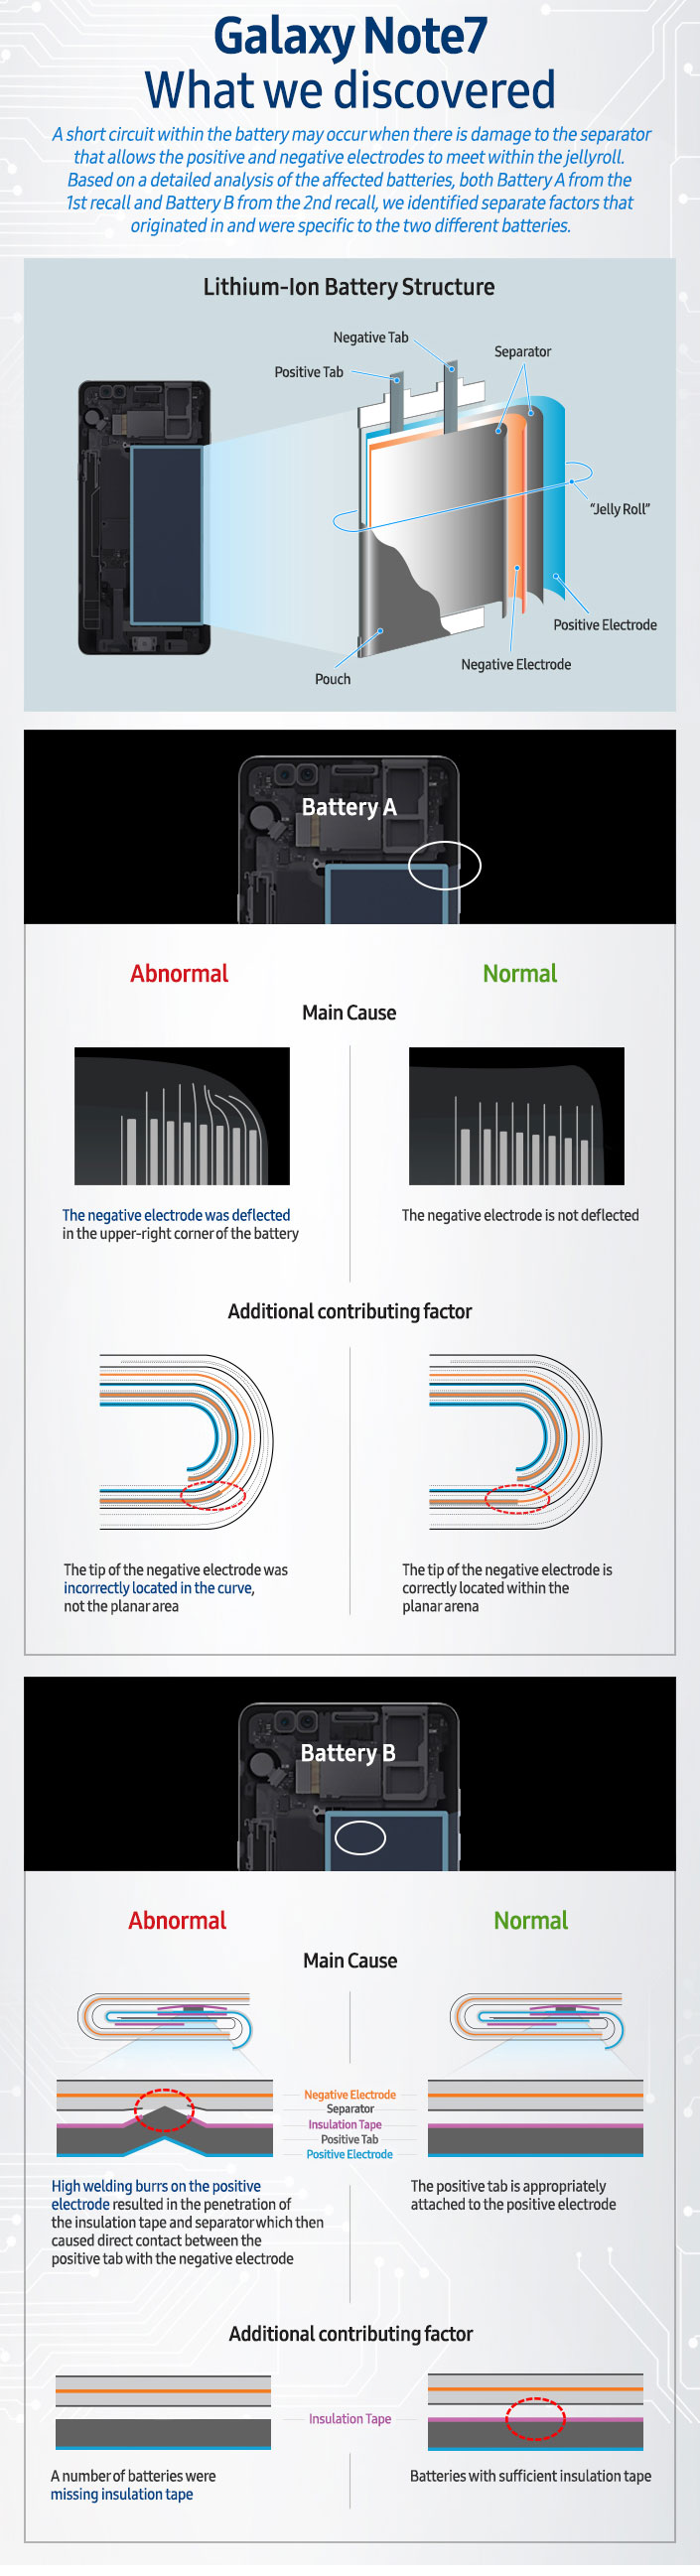 Galaxy Note 7 Explosion Infographic